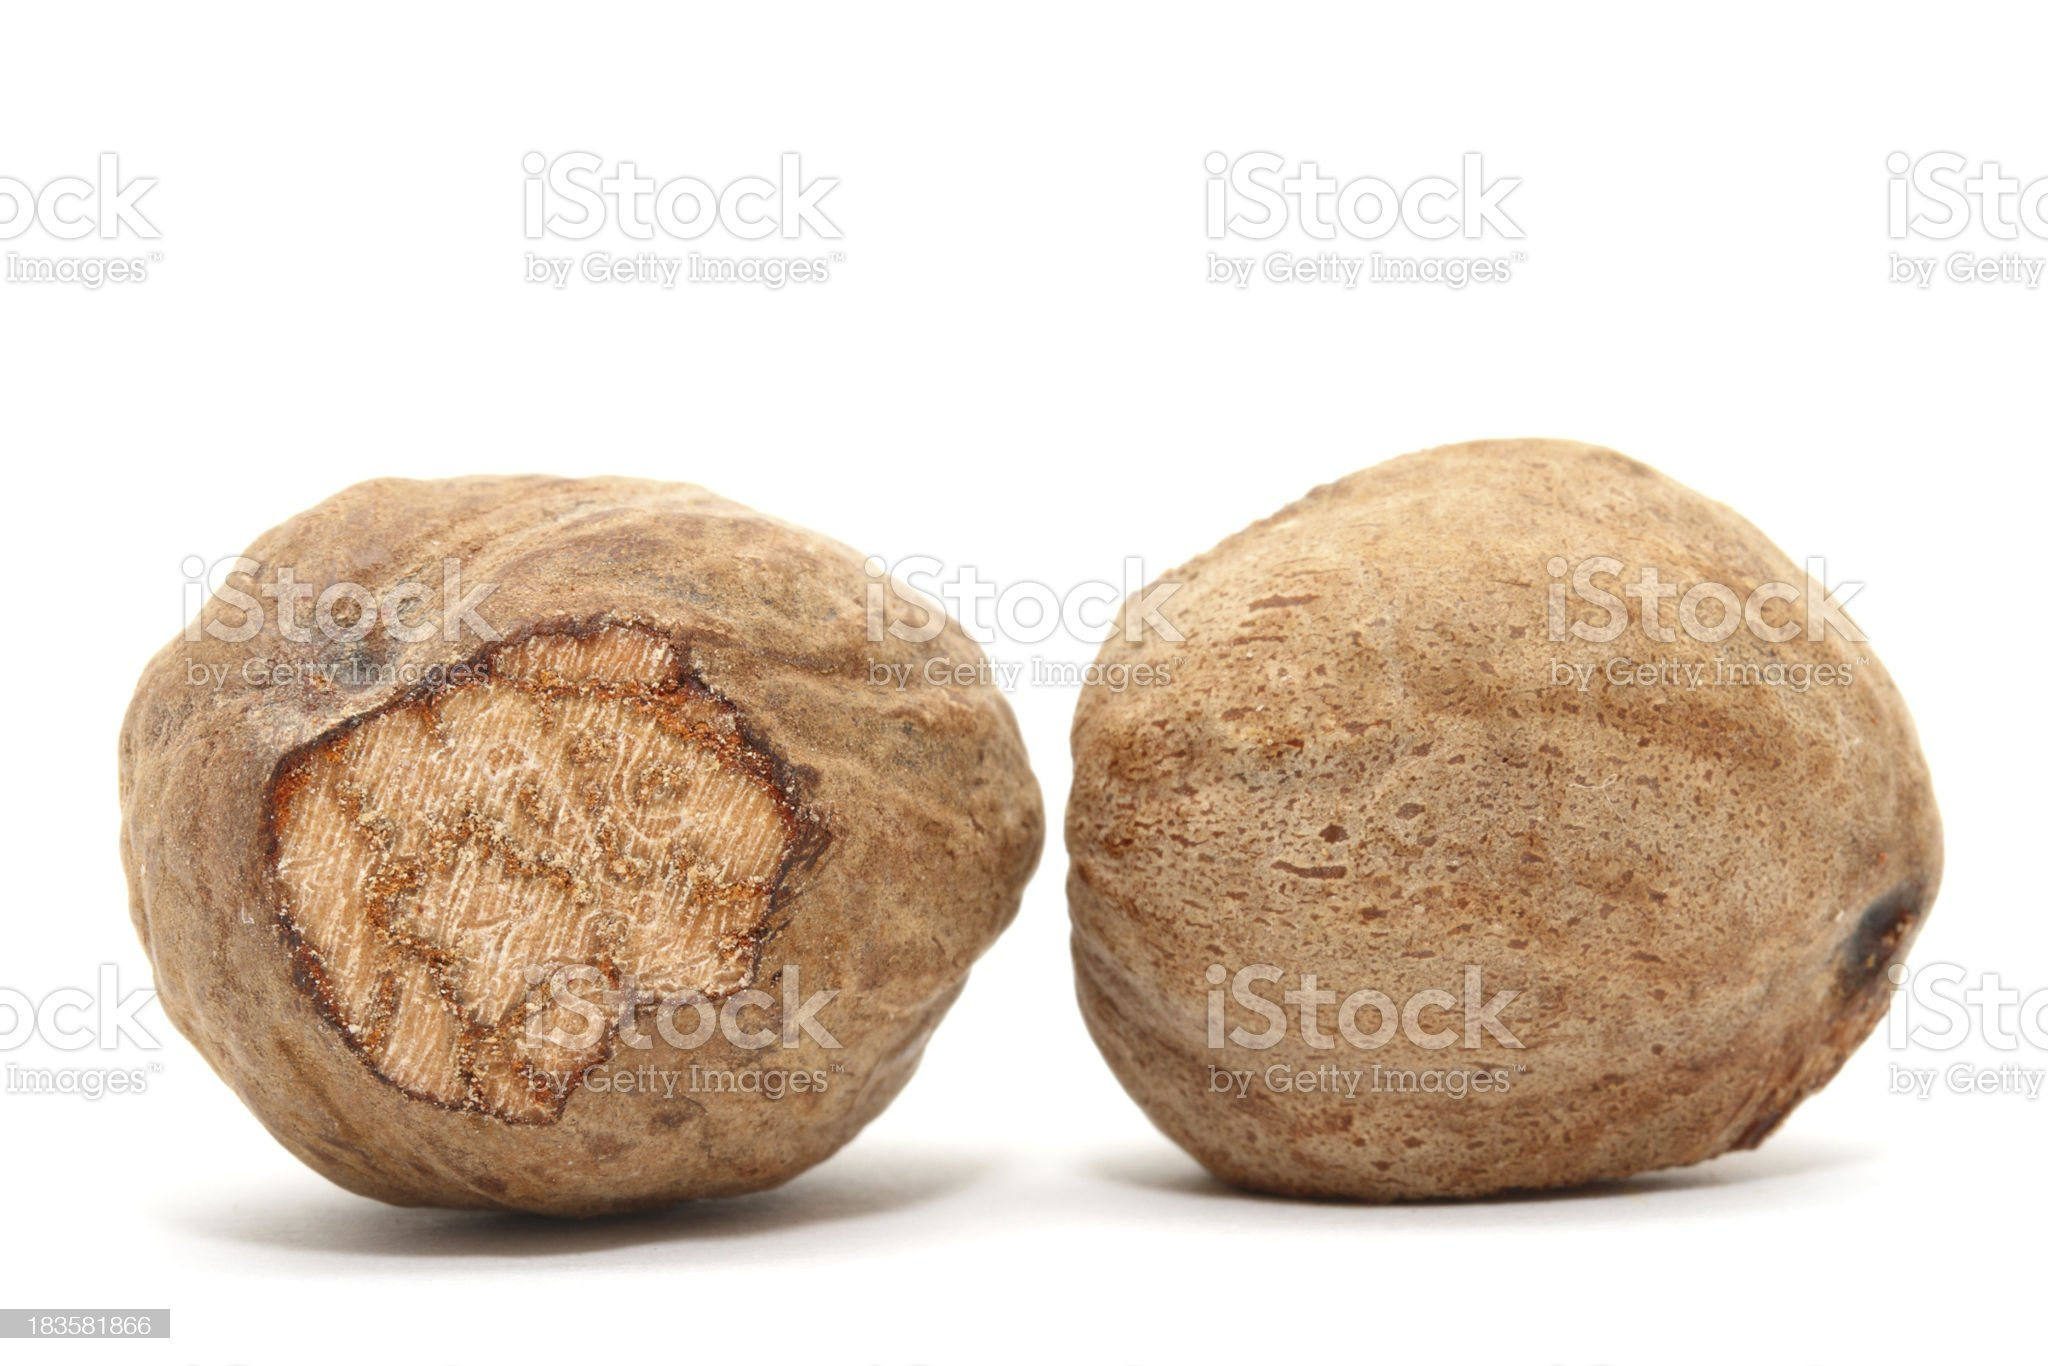 Two nutmegs on white background royalty-free stock photo